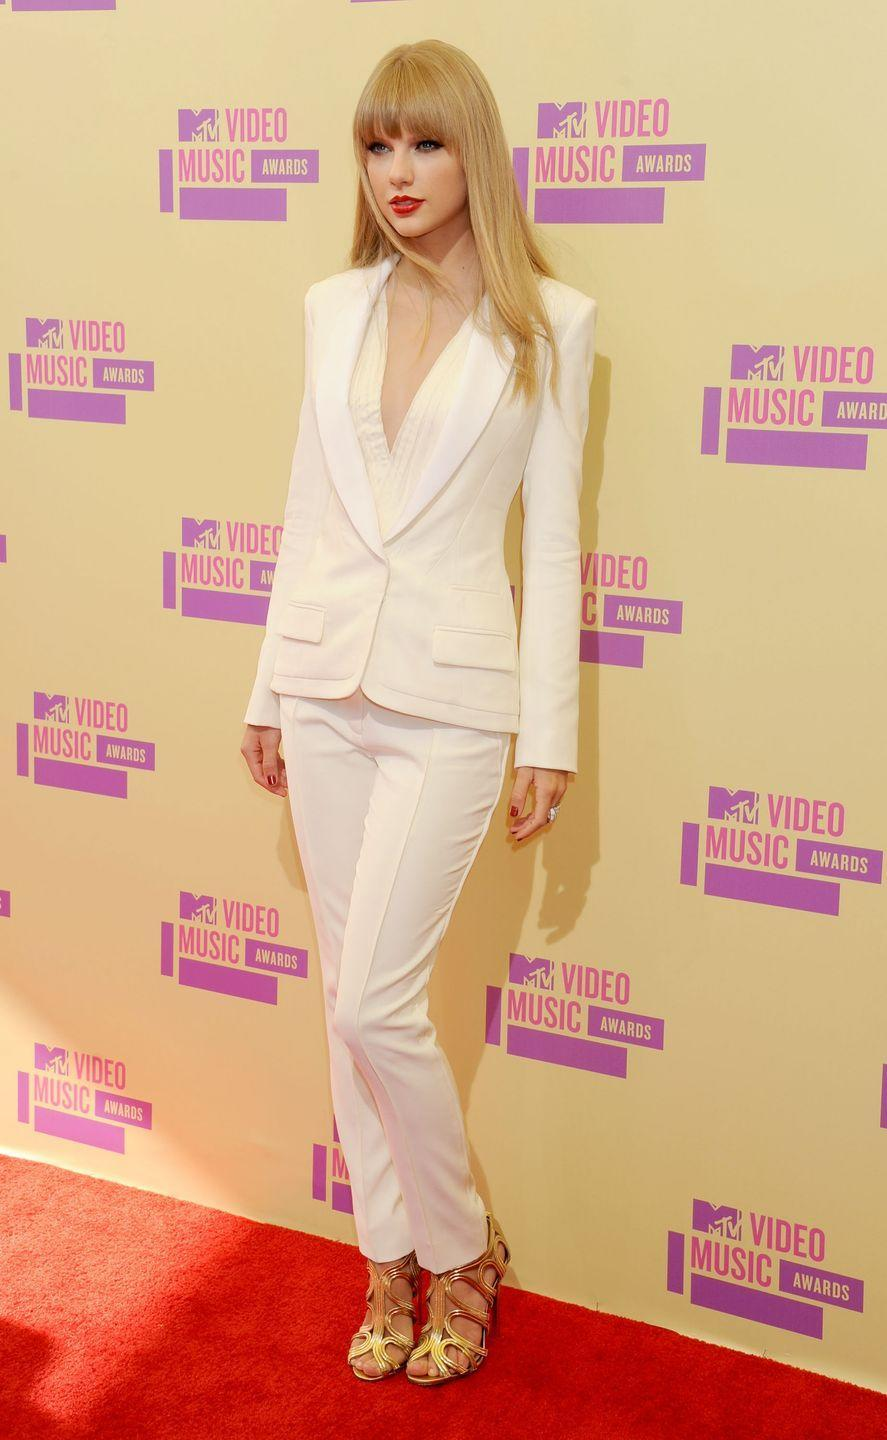 <p>Taylor Swift made a huge statement in this sleek, white look with straight hair in 2012. Previously, she had rocked her signature corkscrew locks and frilly gowns.</p>